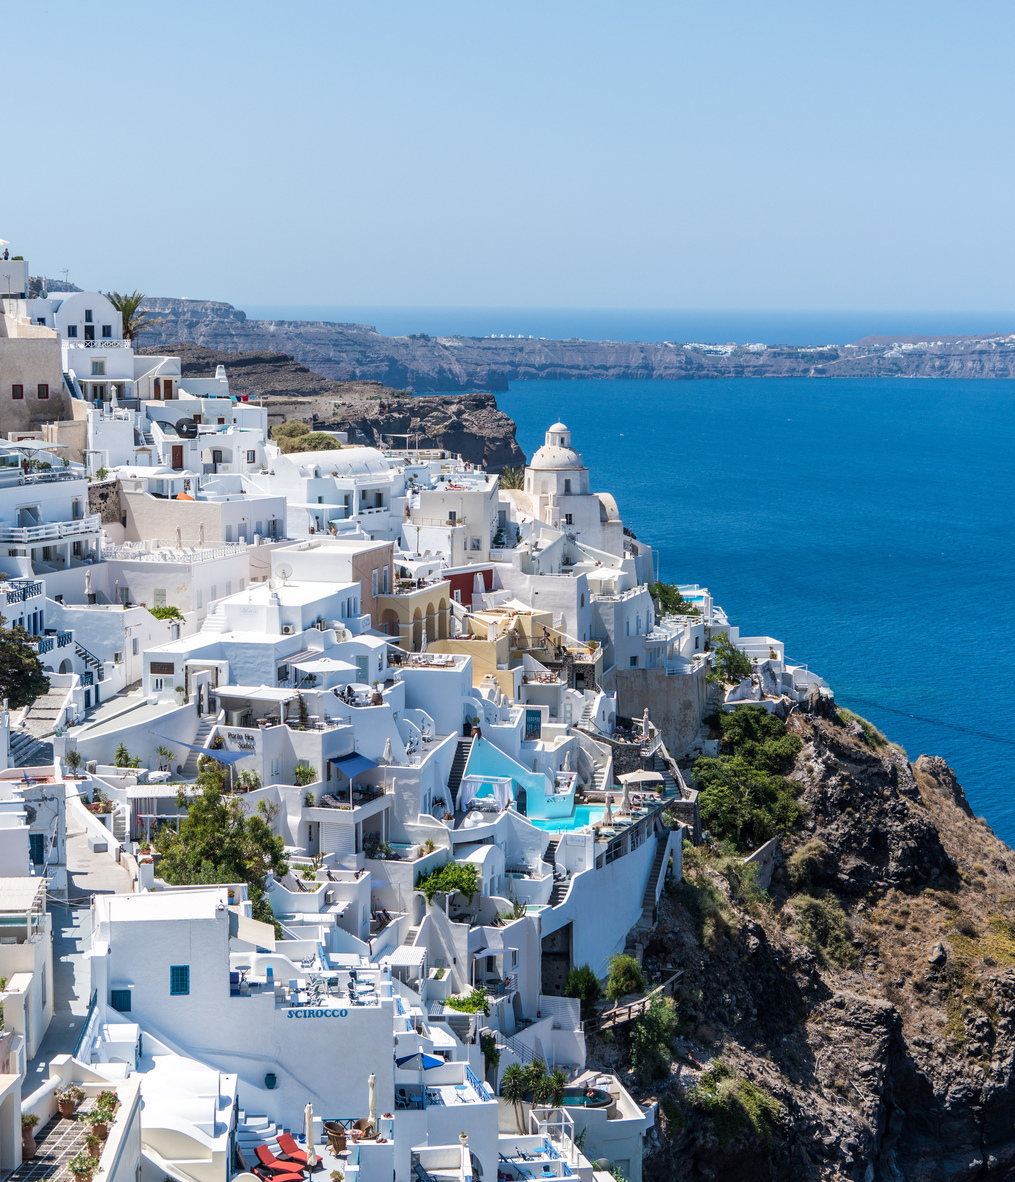 Buildings overlook the water in Greece.